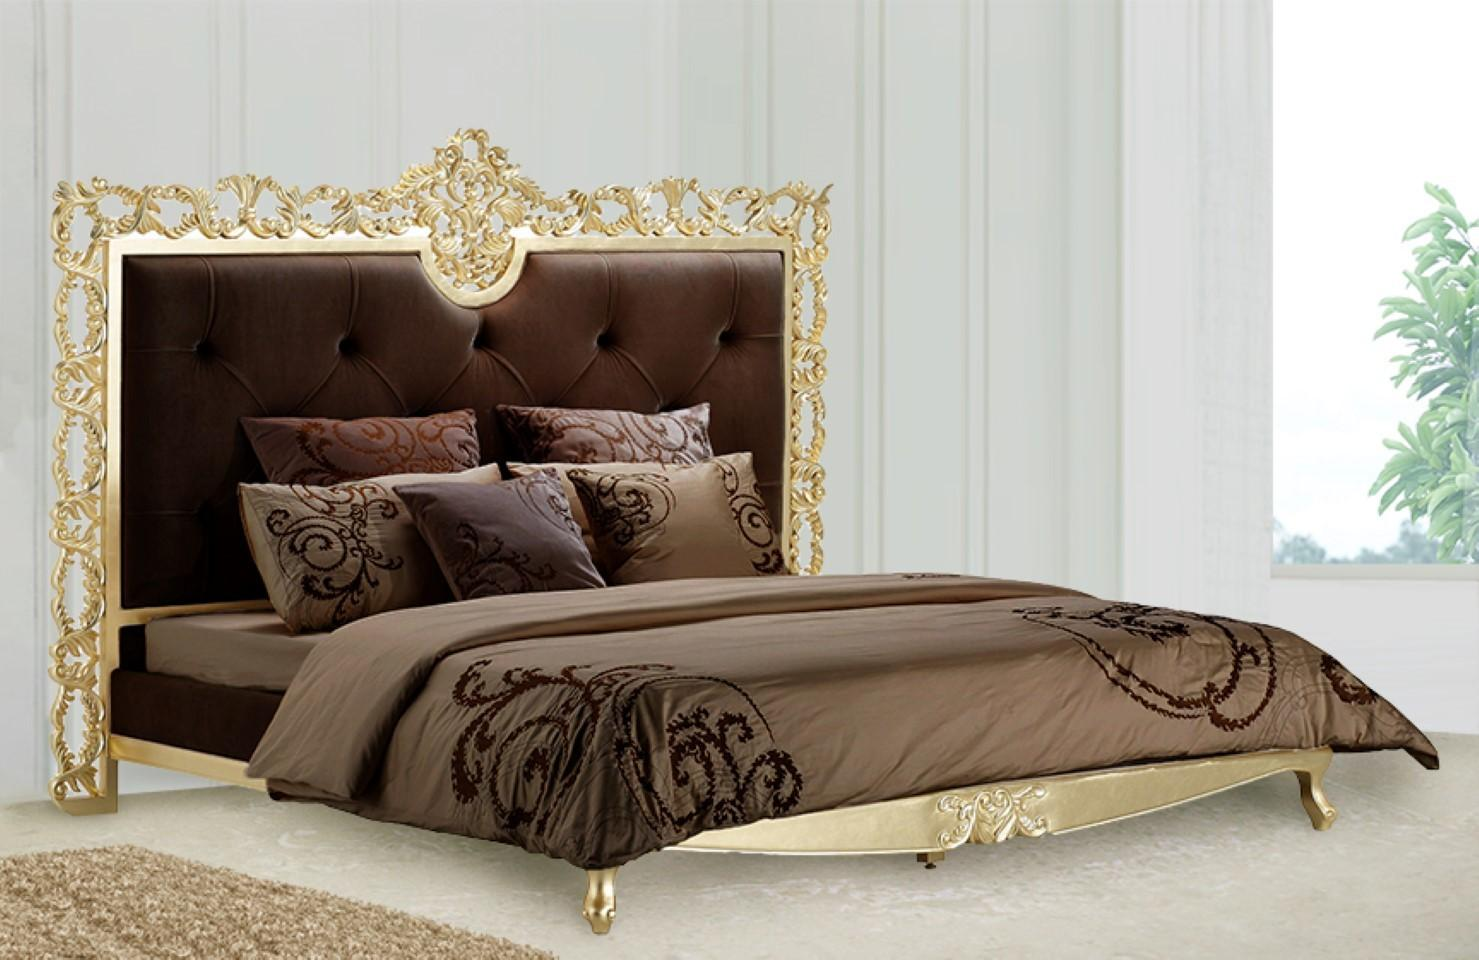 Excellent Bed Design Button Tufted Headboard